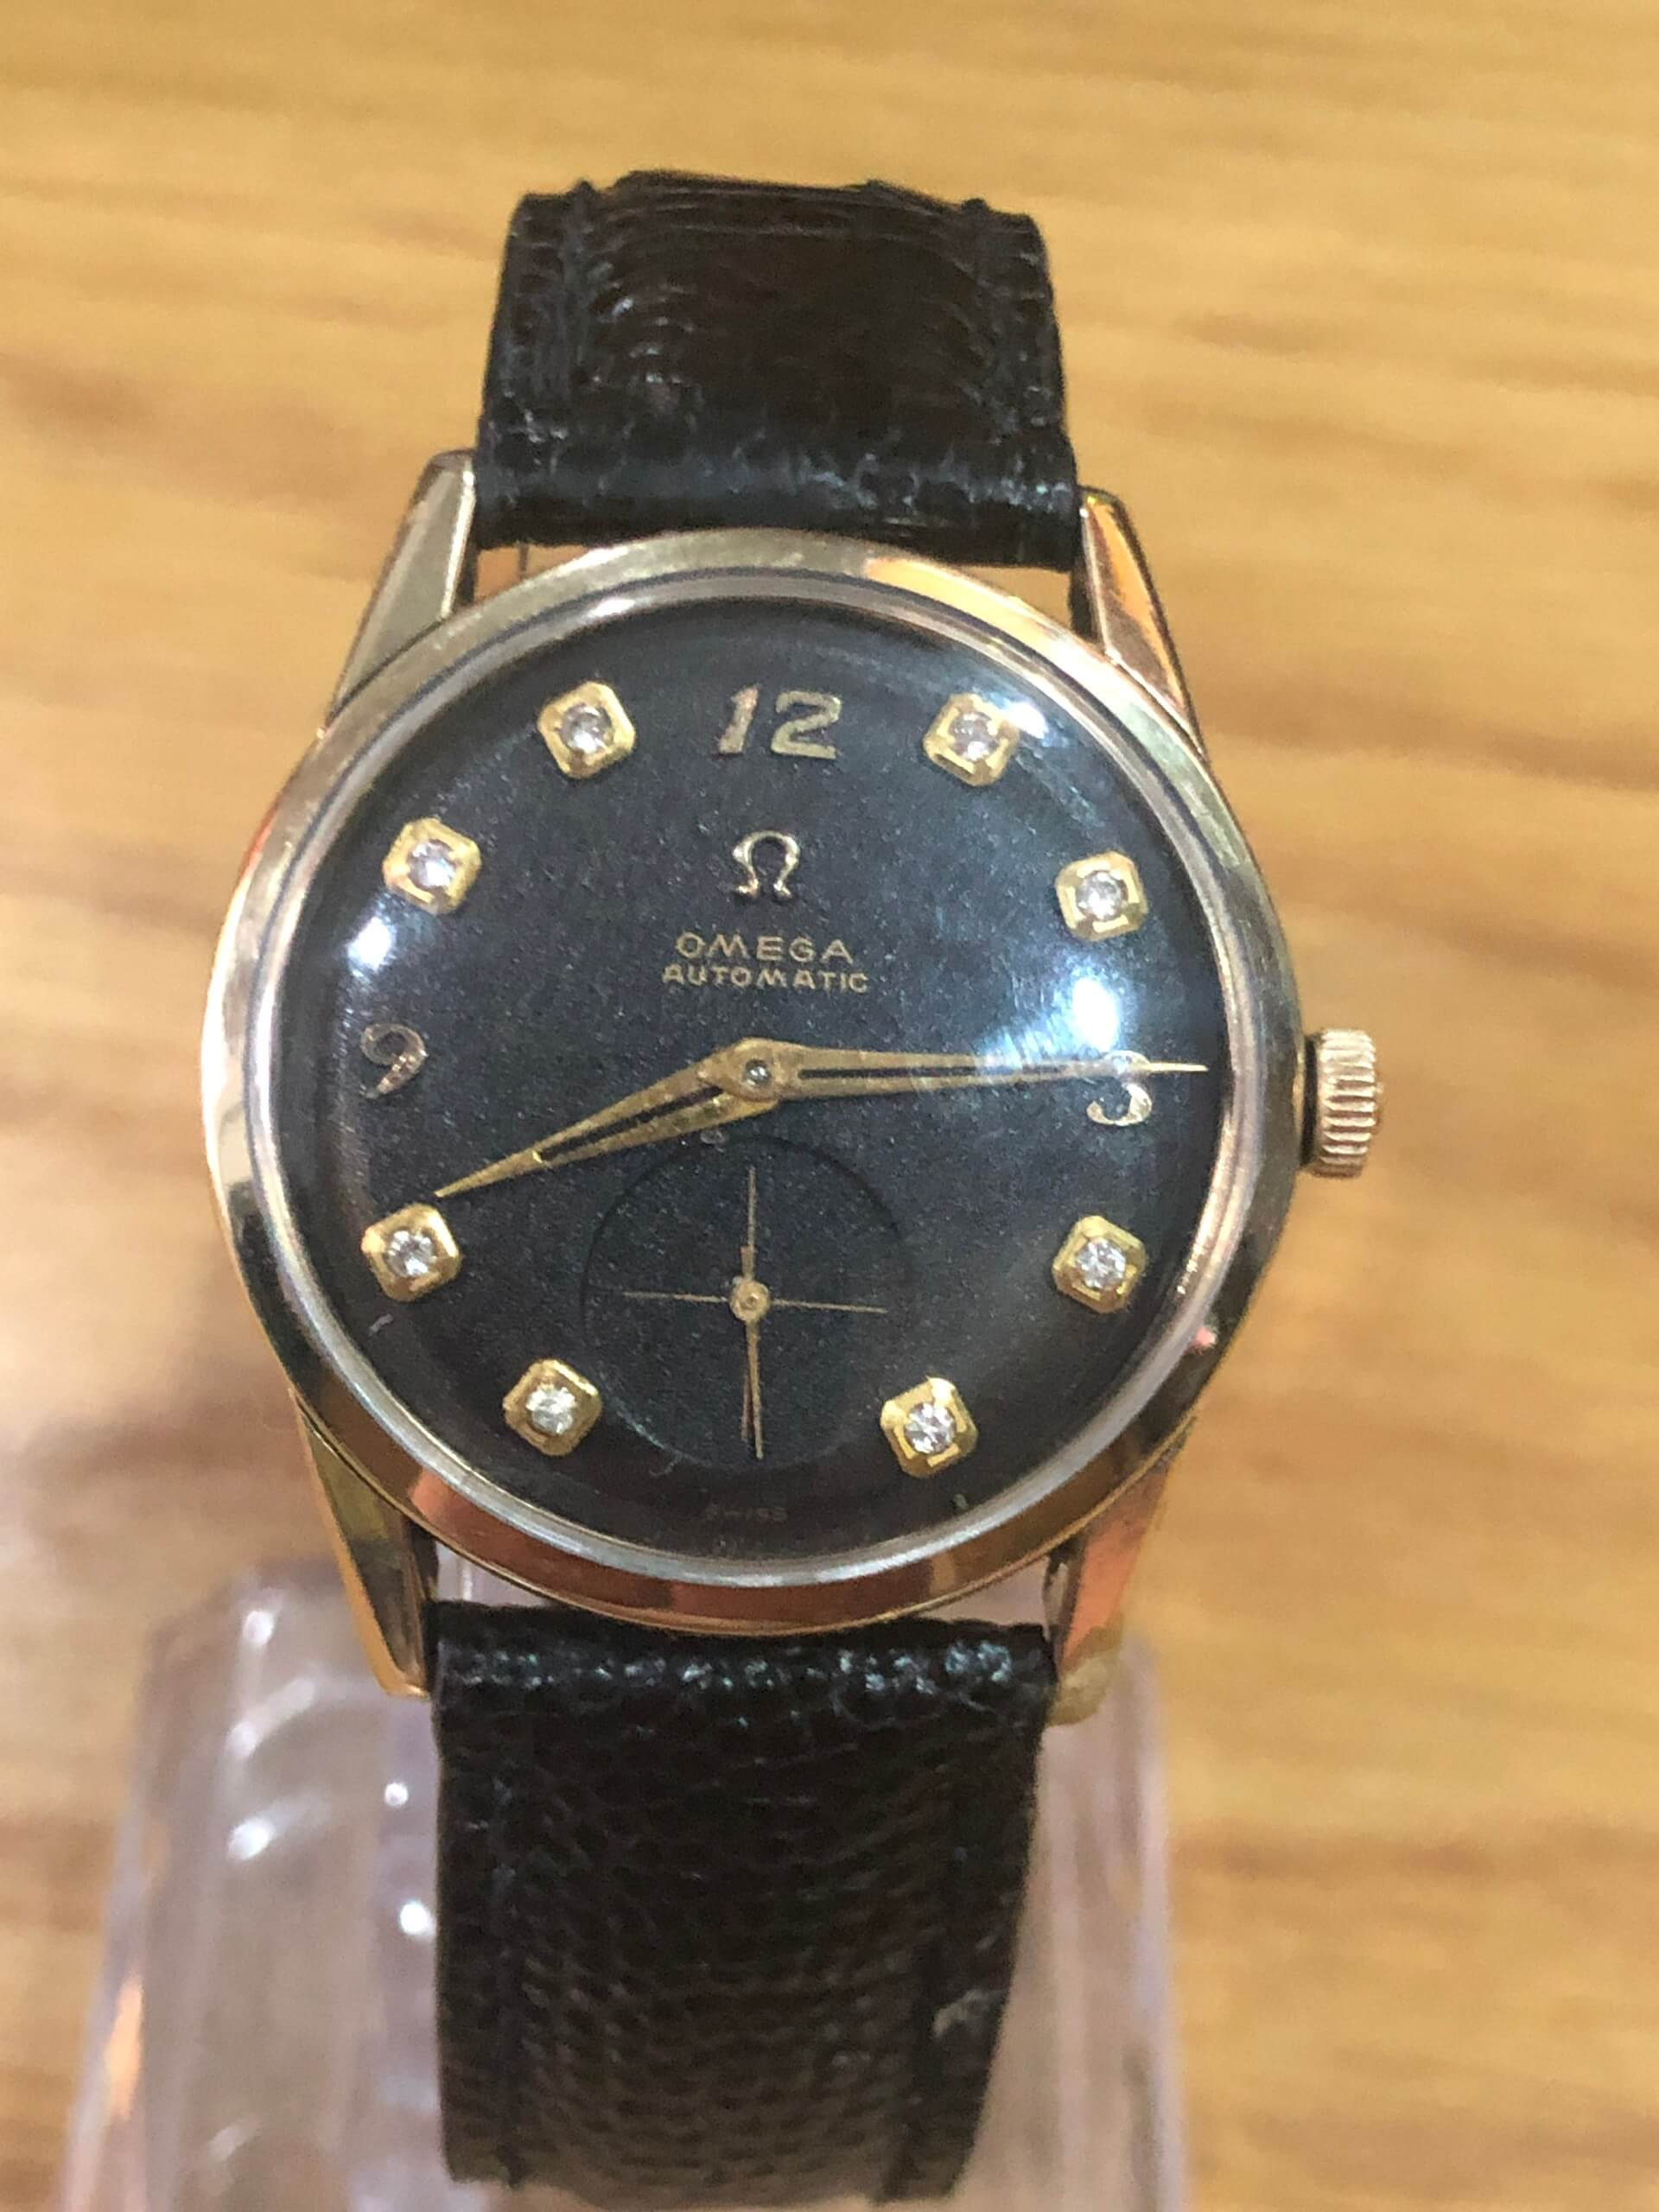 Omega Seamaster Bumper Automatic cal.342 in 1952 with Diamonds